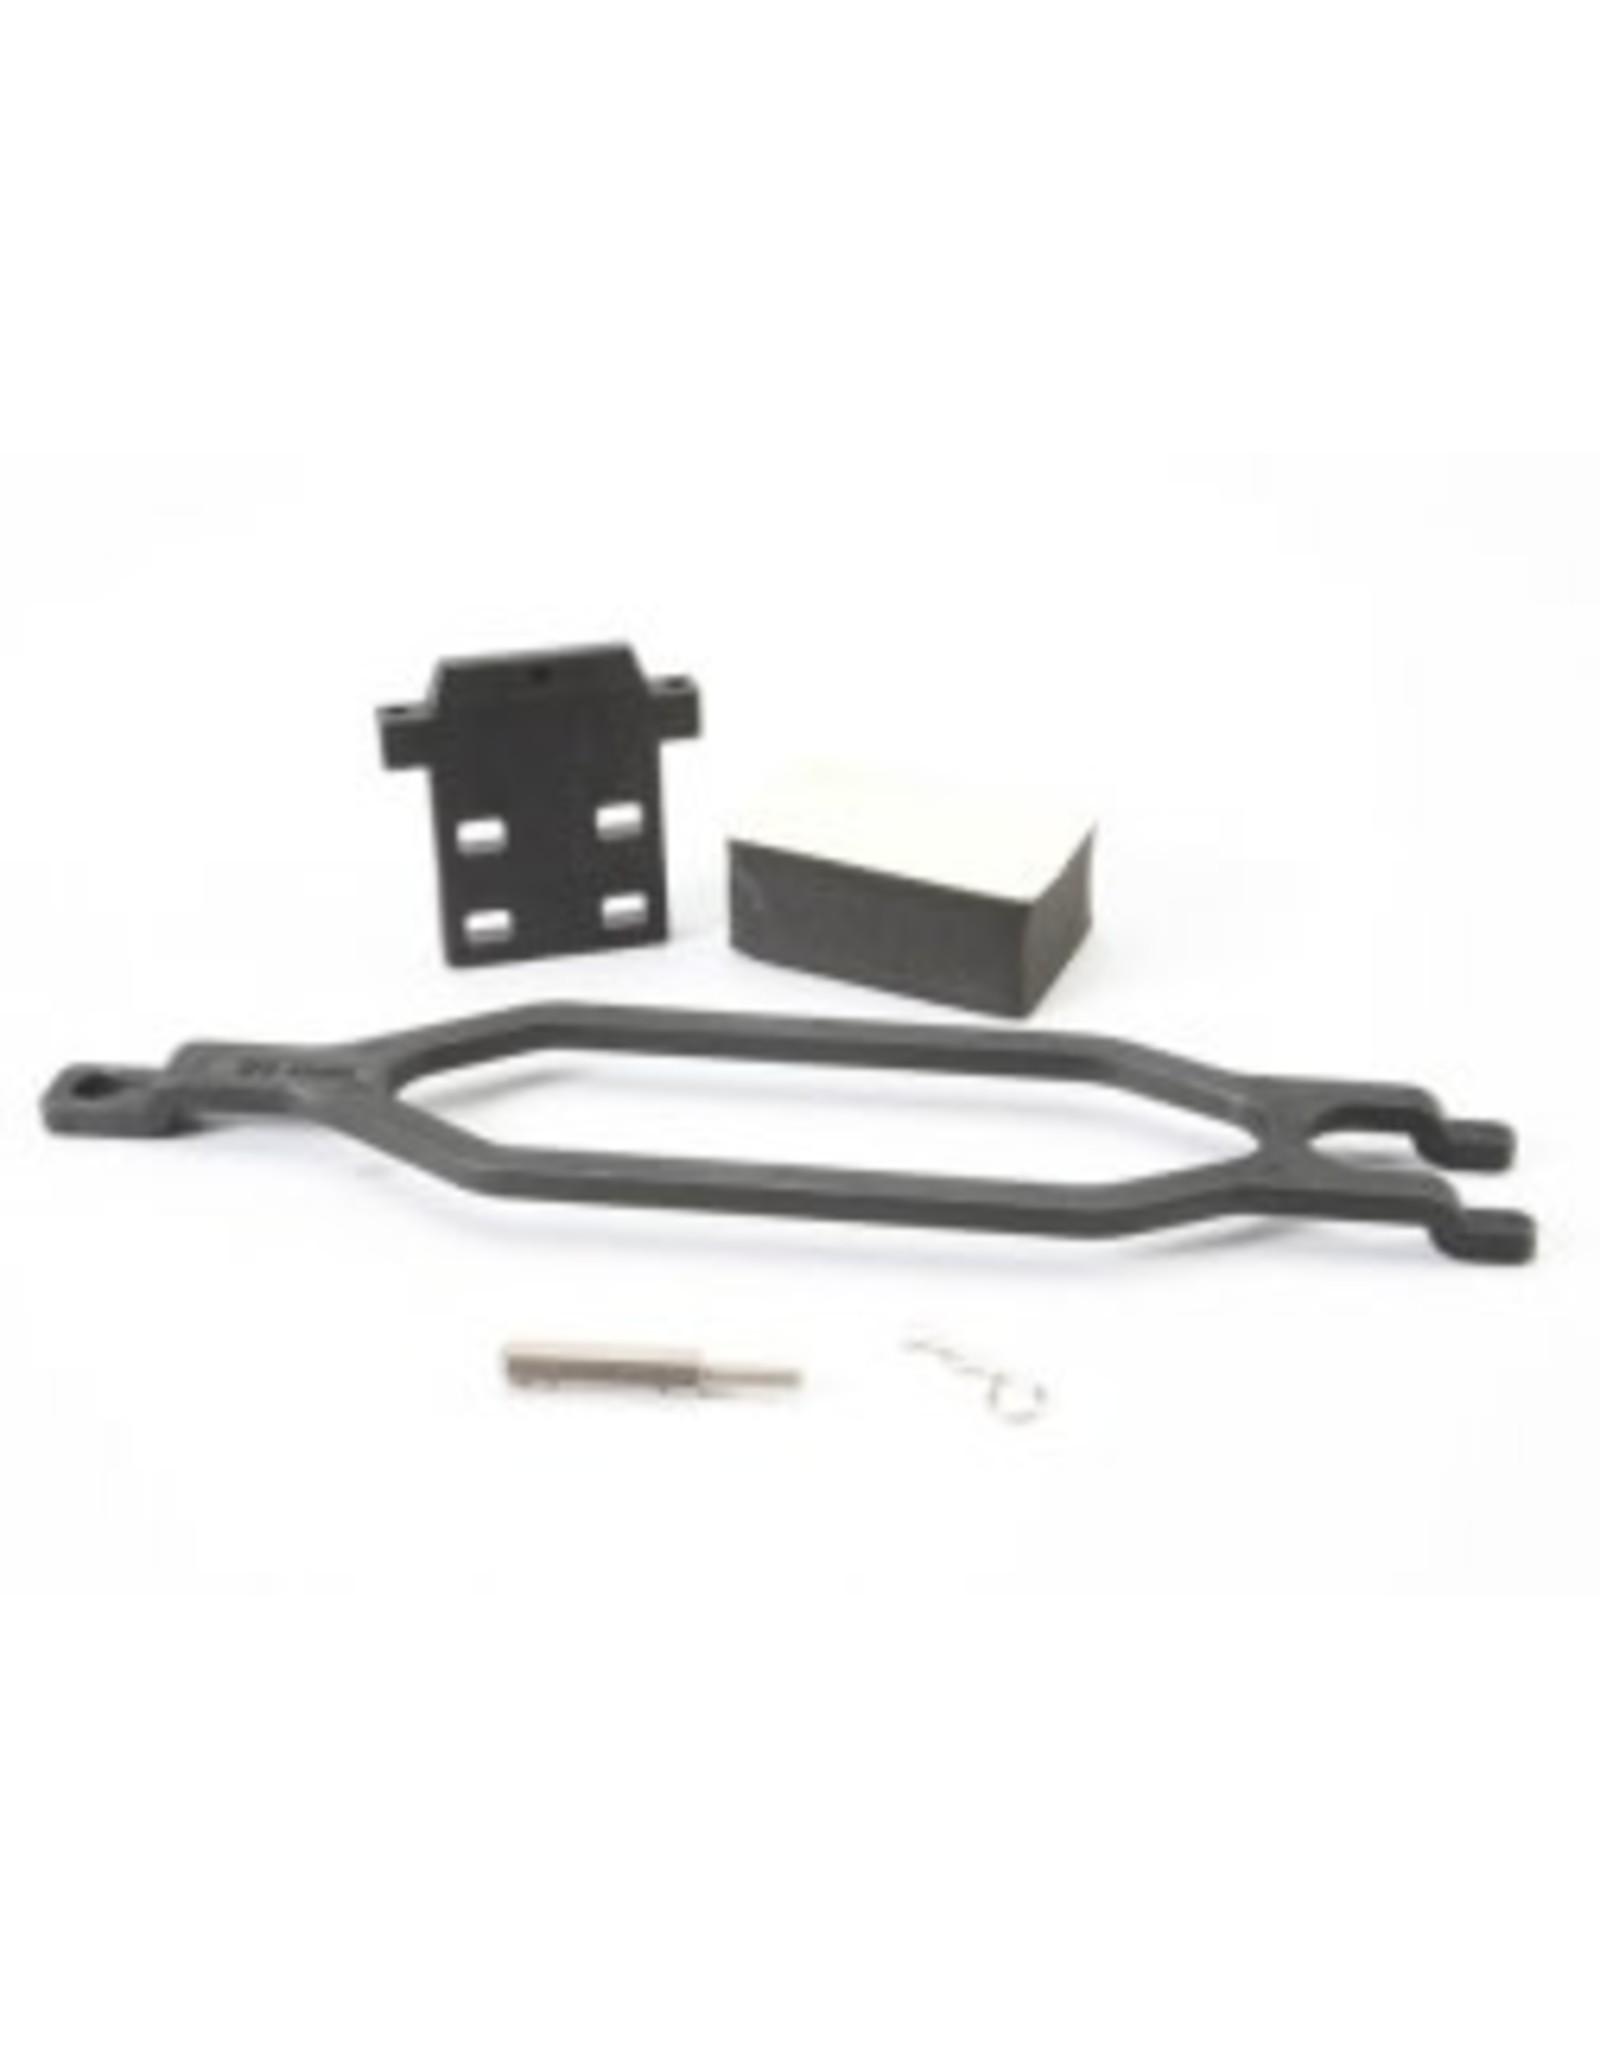 Traxxas [Hold down, battery/ hold down retainer/ battery post/ foam spacer/ angled body clip (allows for installation of taller, multi-cell batteries)] Hold down, battery/ hold down retainer/ battery post/ foam spacer/ angled body clip (allows for installation o